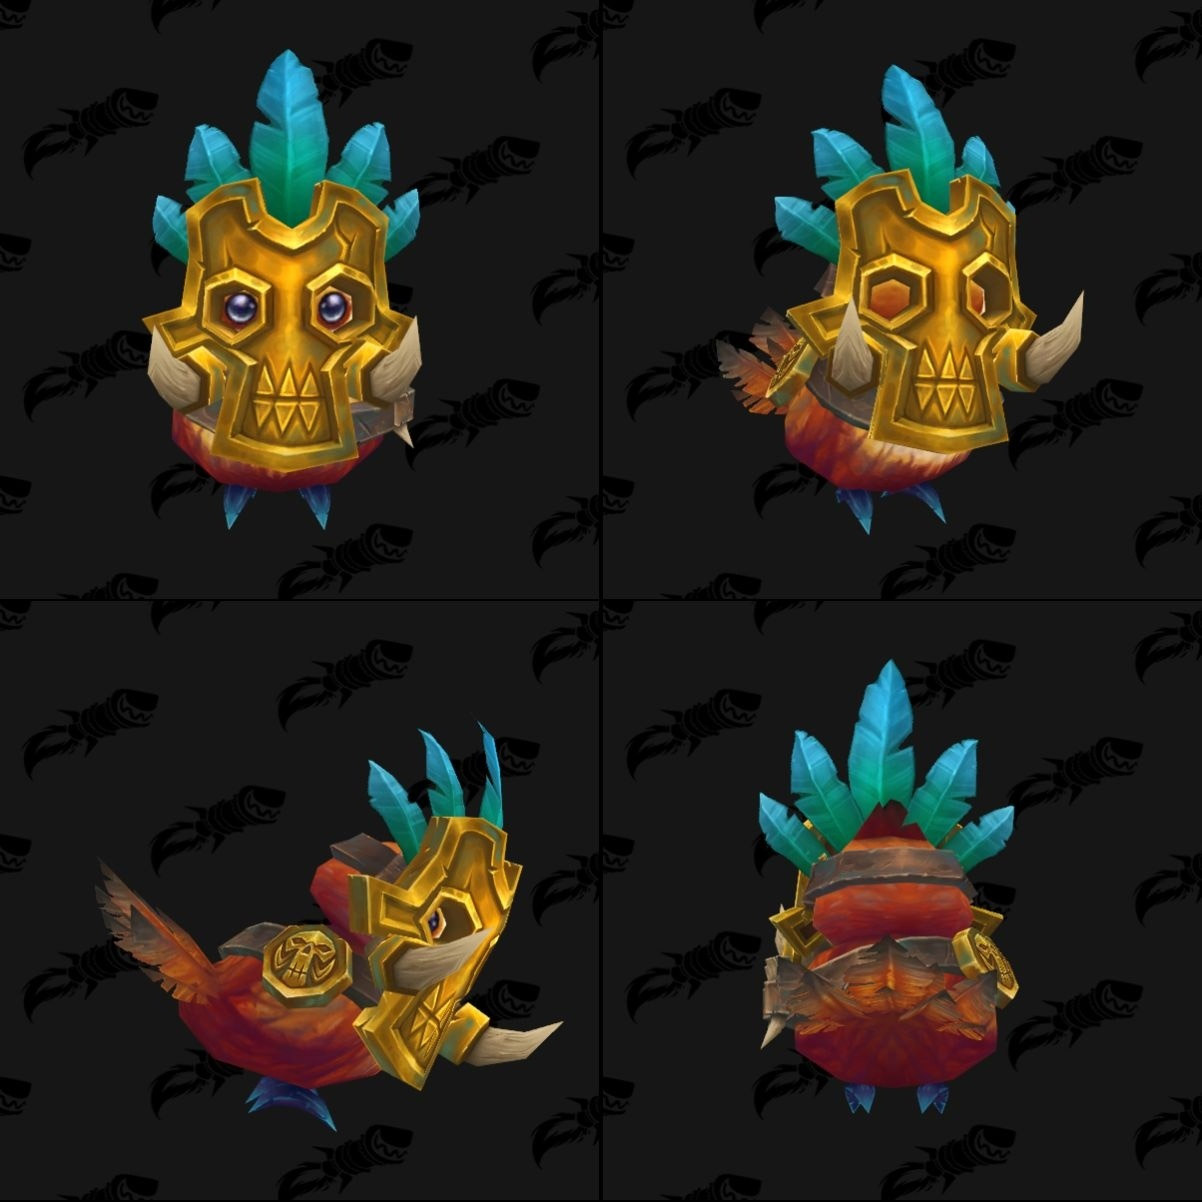 Pépé costume Zandalari - Battle for Azeroth